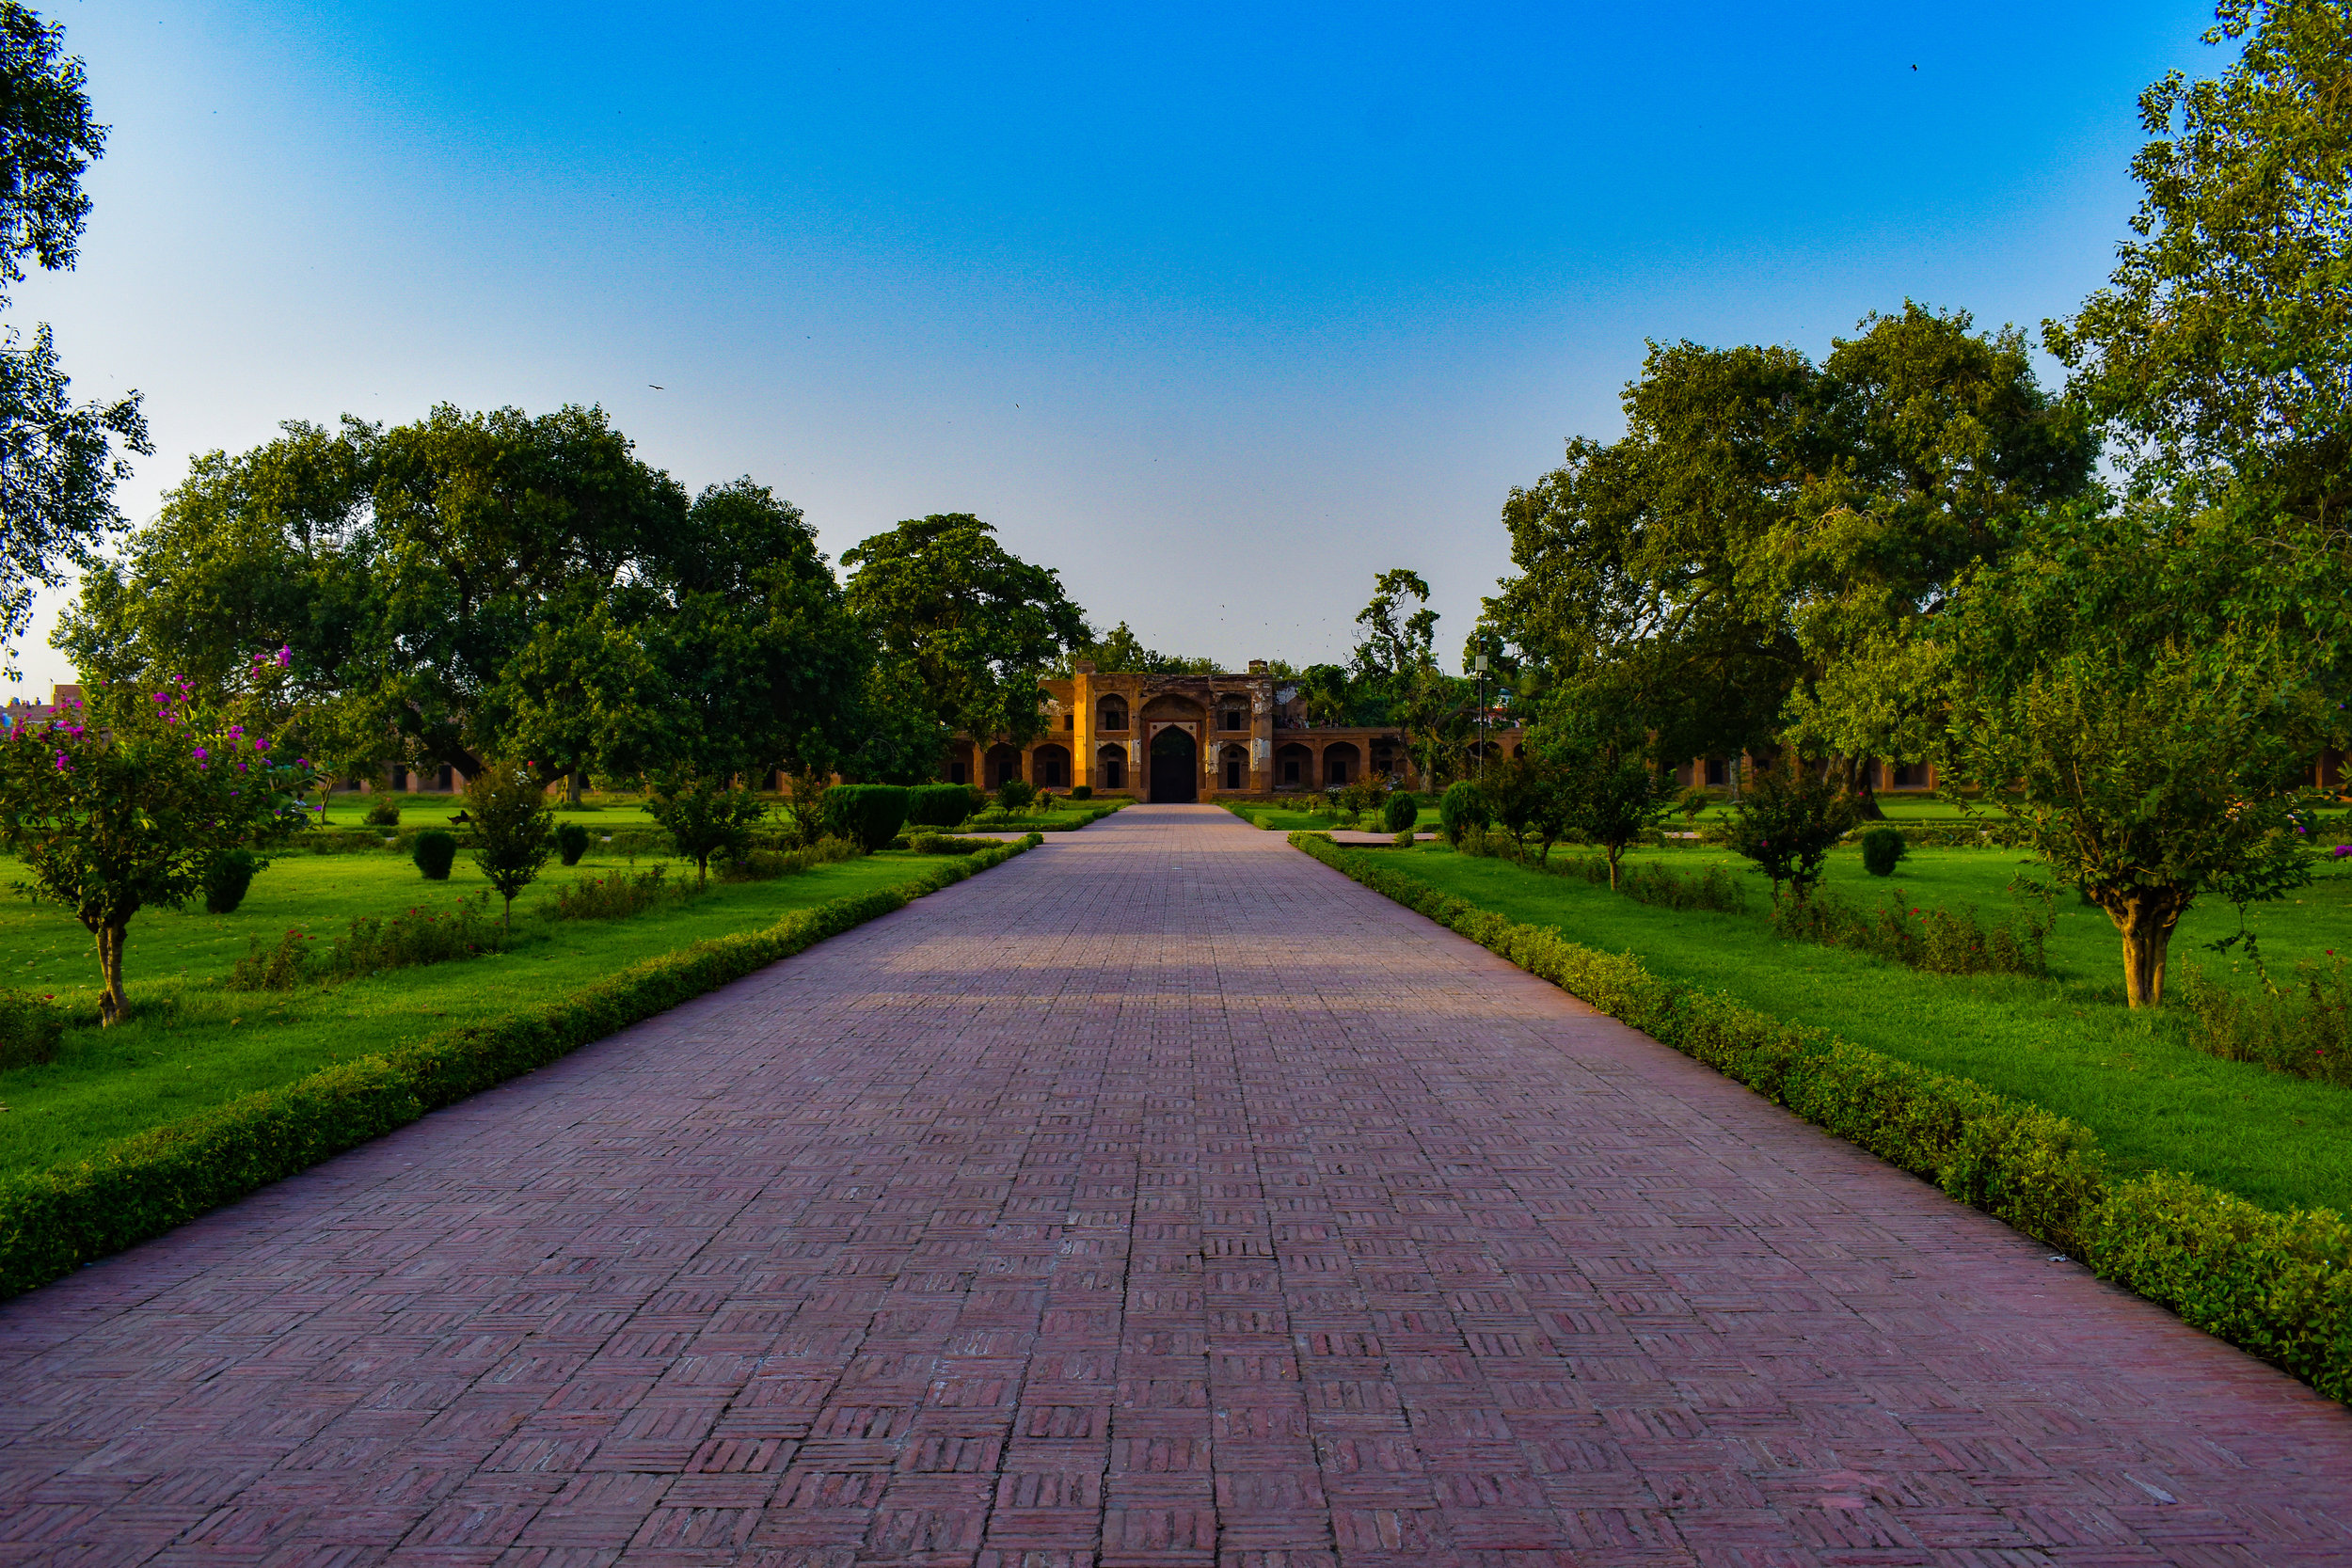 Approaching the entrance of Jahangir's Tomb.